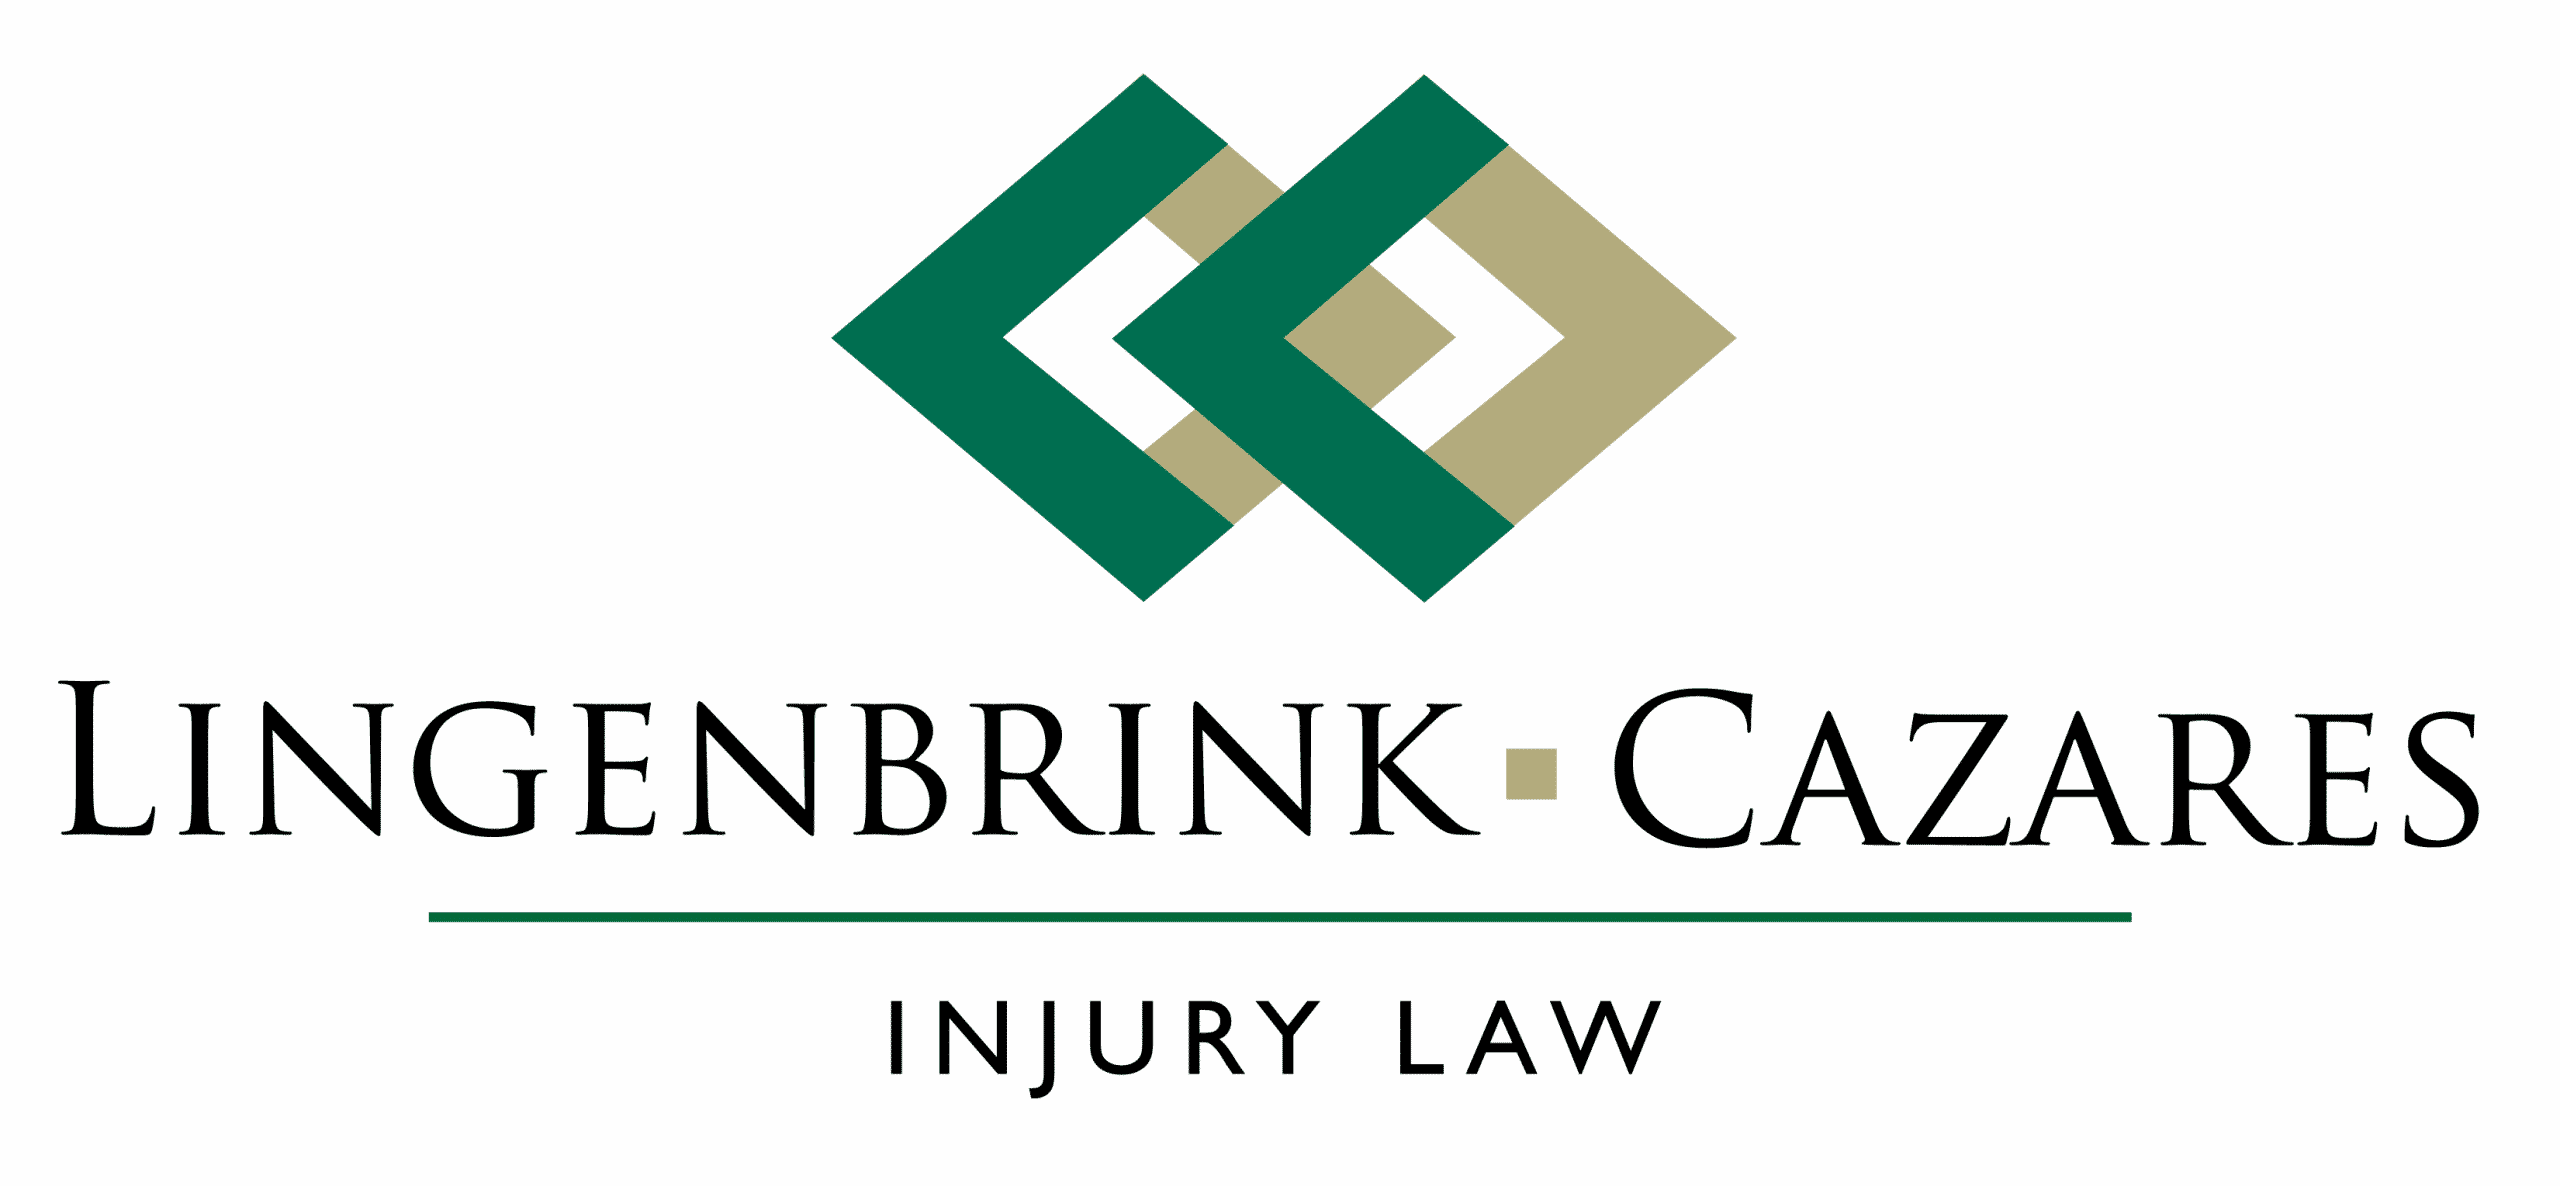 Lingenbrink Cazares Injury Law